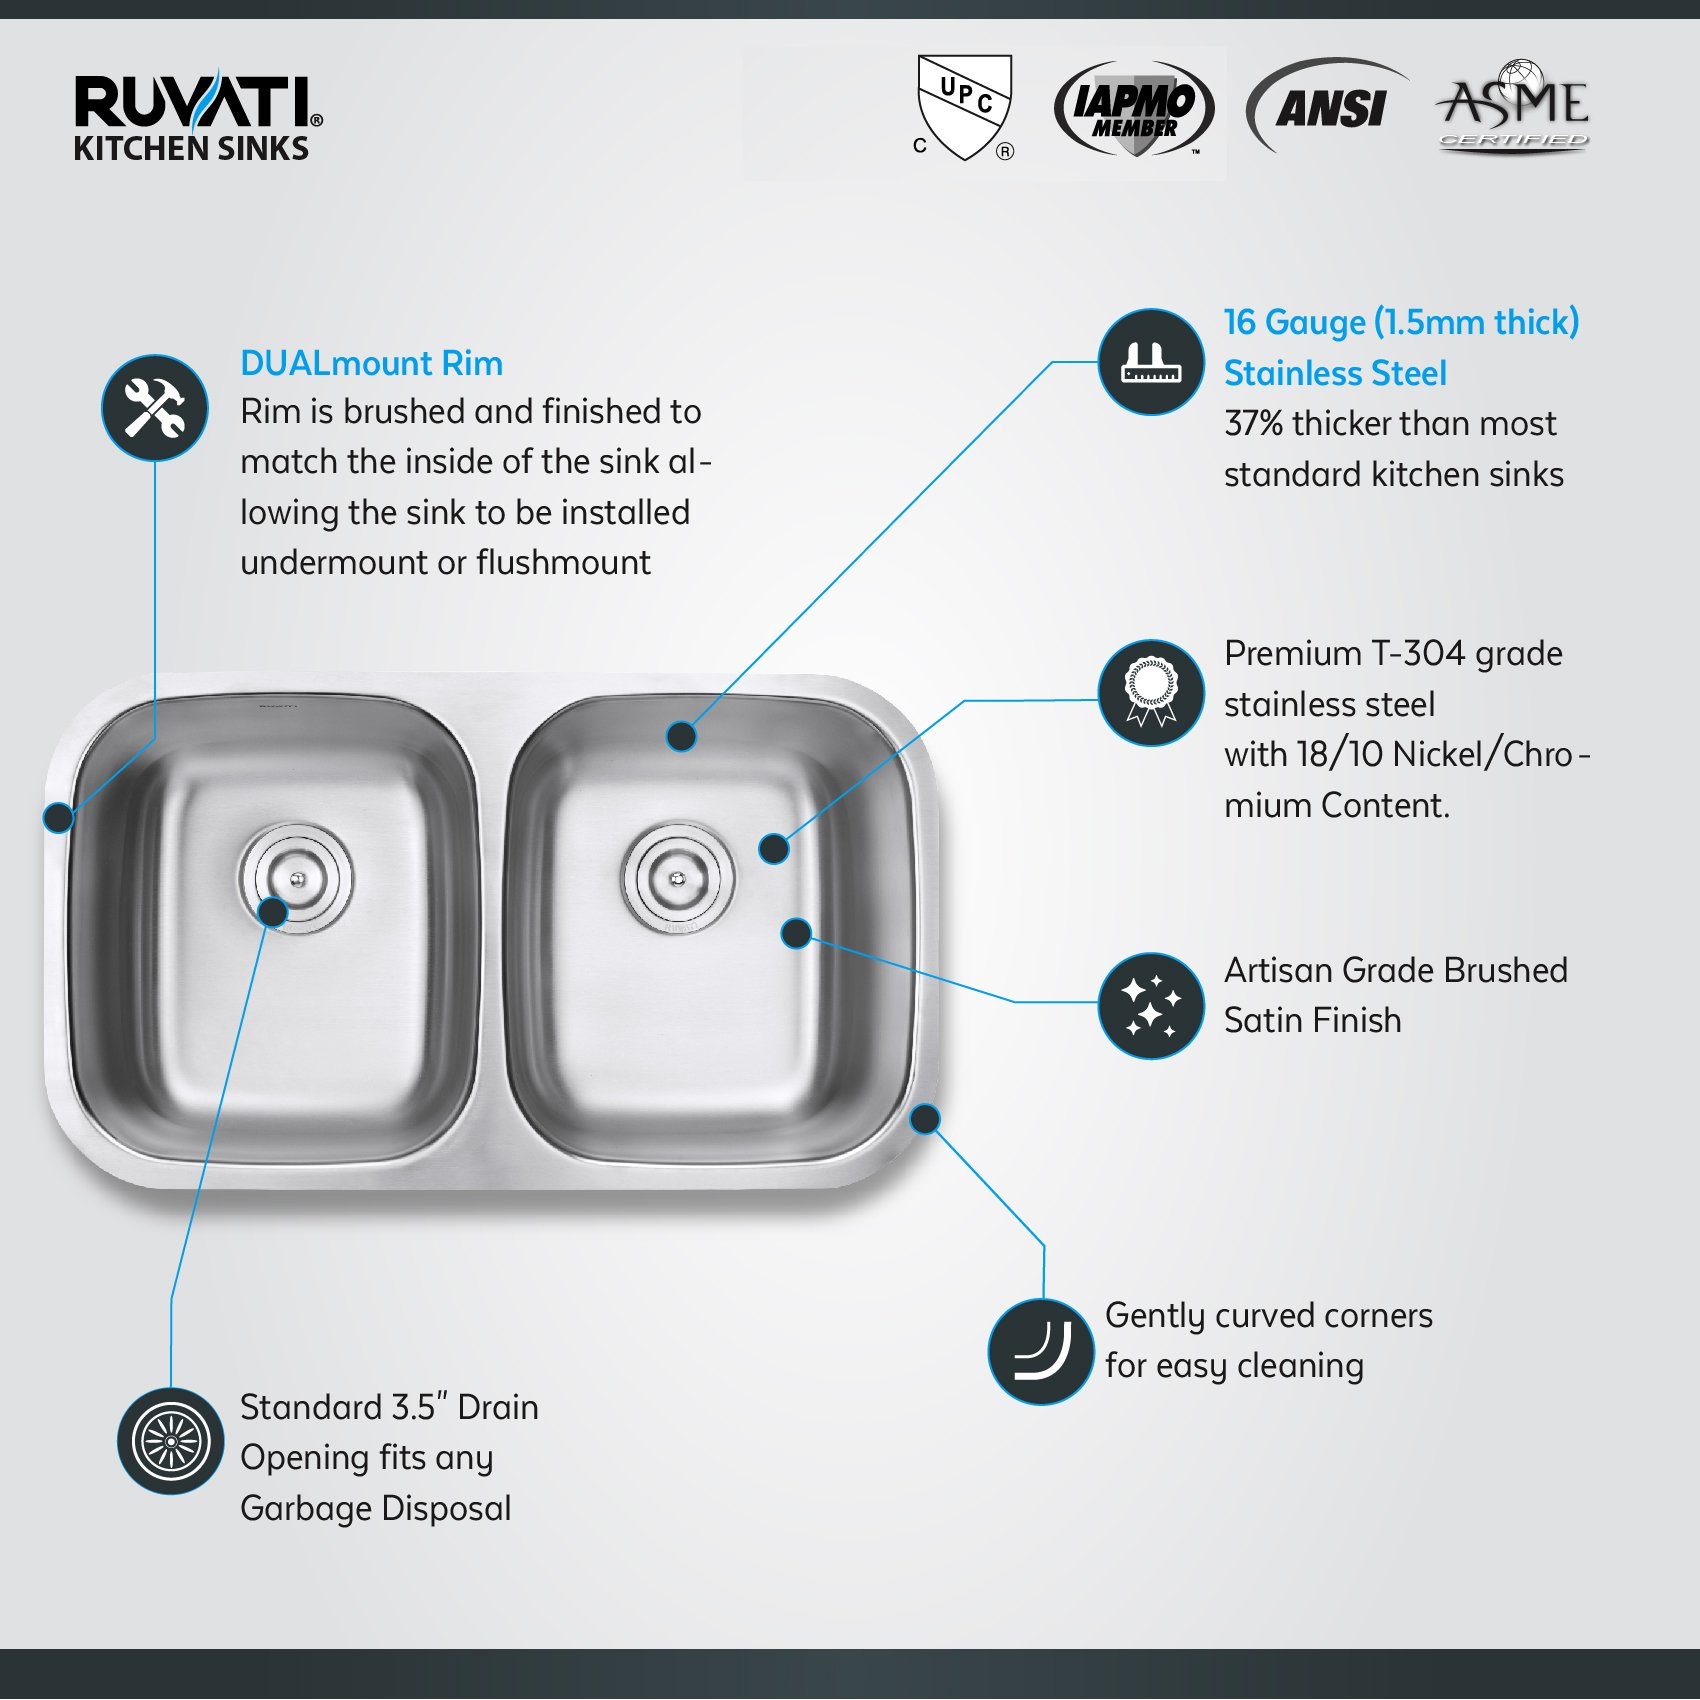 Ruvati 32-inch Undermount 50/50 Double Bowl 16 Gauge Stainless Steel Kitchen Sink - RVM4300 by Ruvati (Image #4)